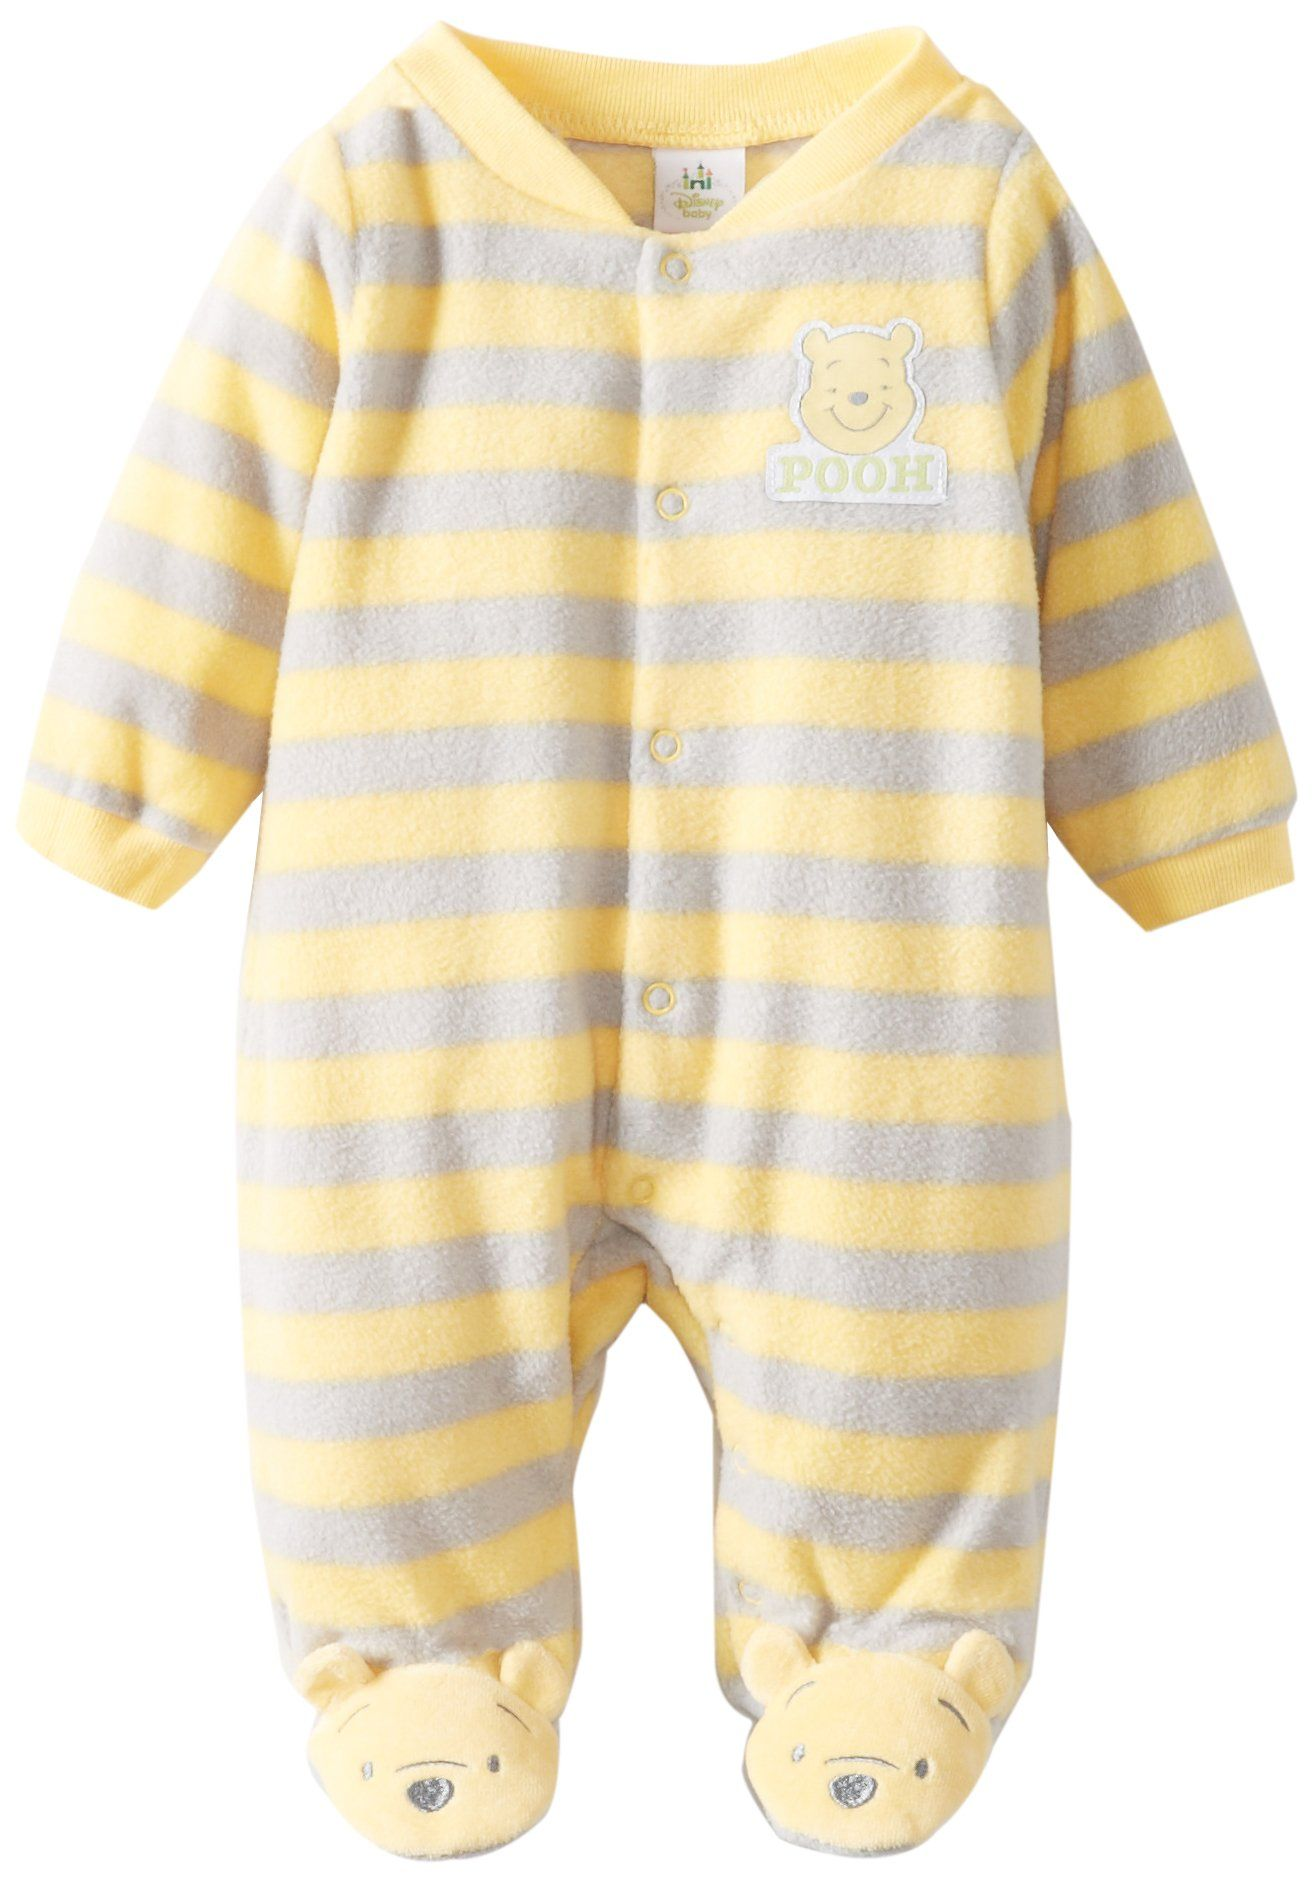 b115c64df59a Disney Baby Unisex-Baby Newborn Winnie the Pooh Sleep and Play ...